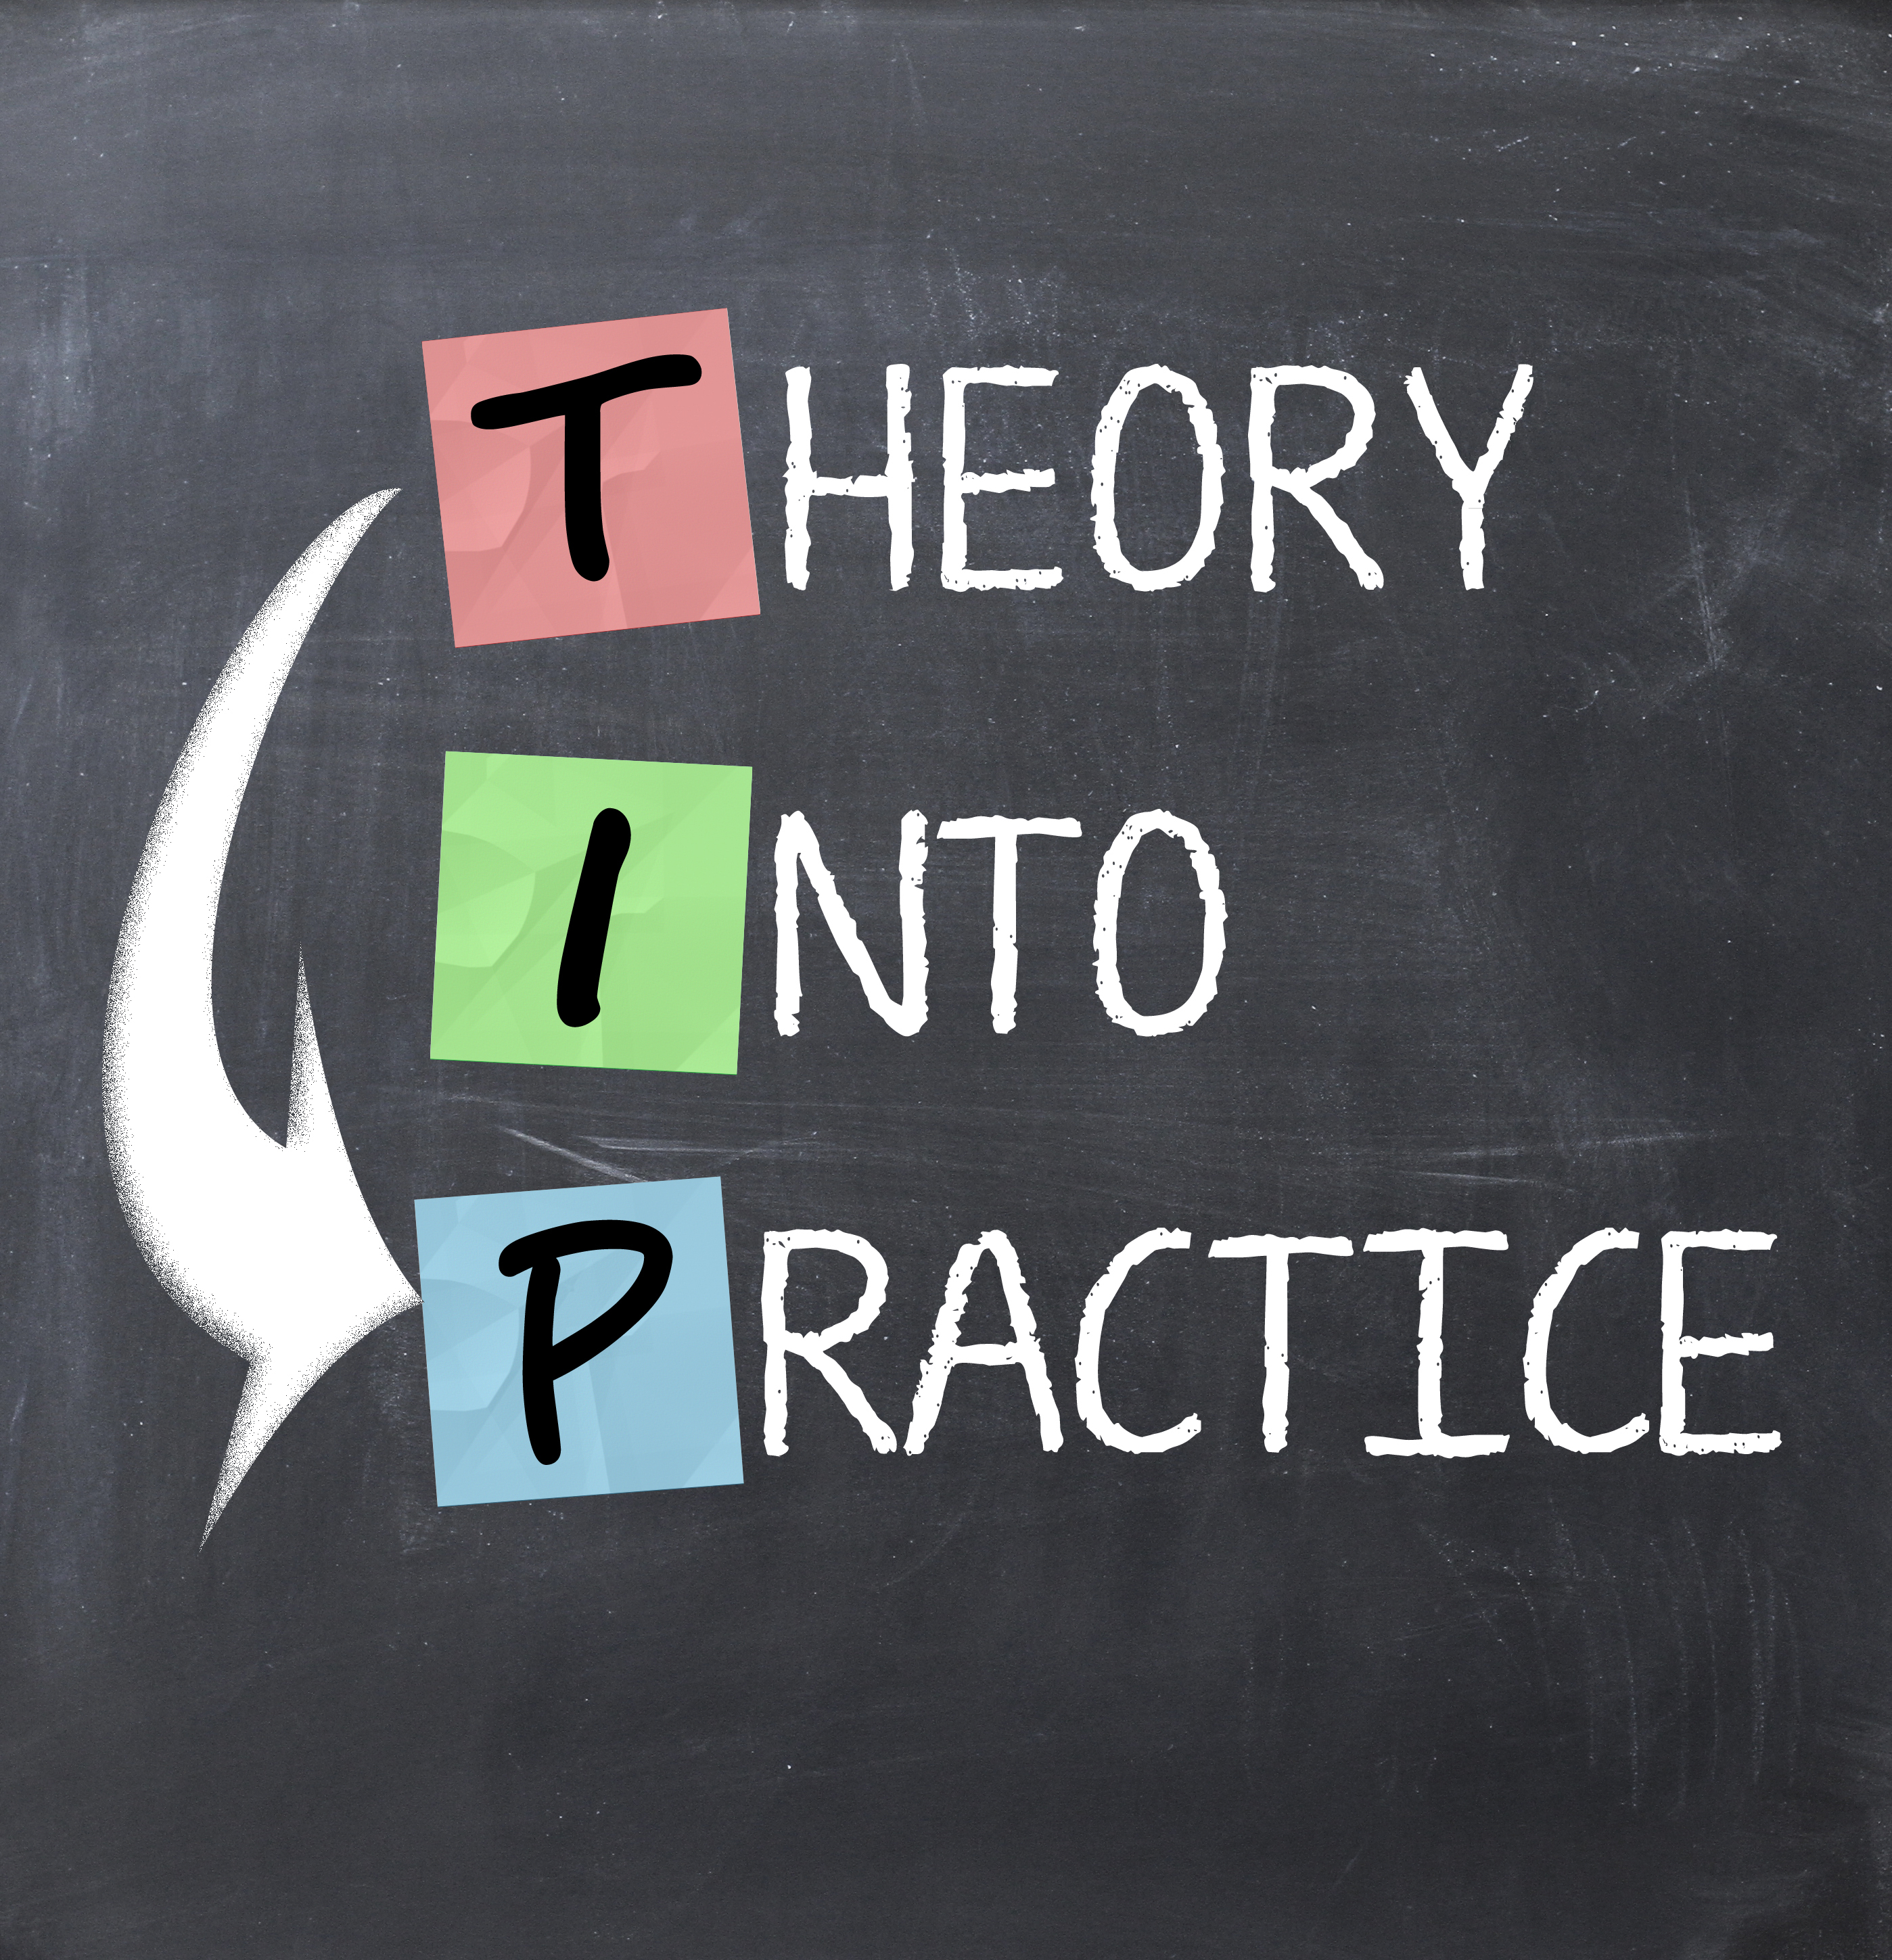 the theory and practice of item response theory pdf